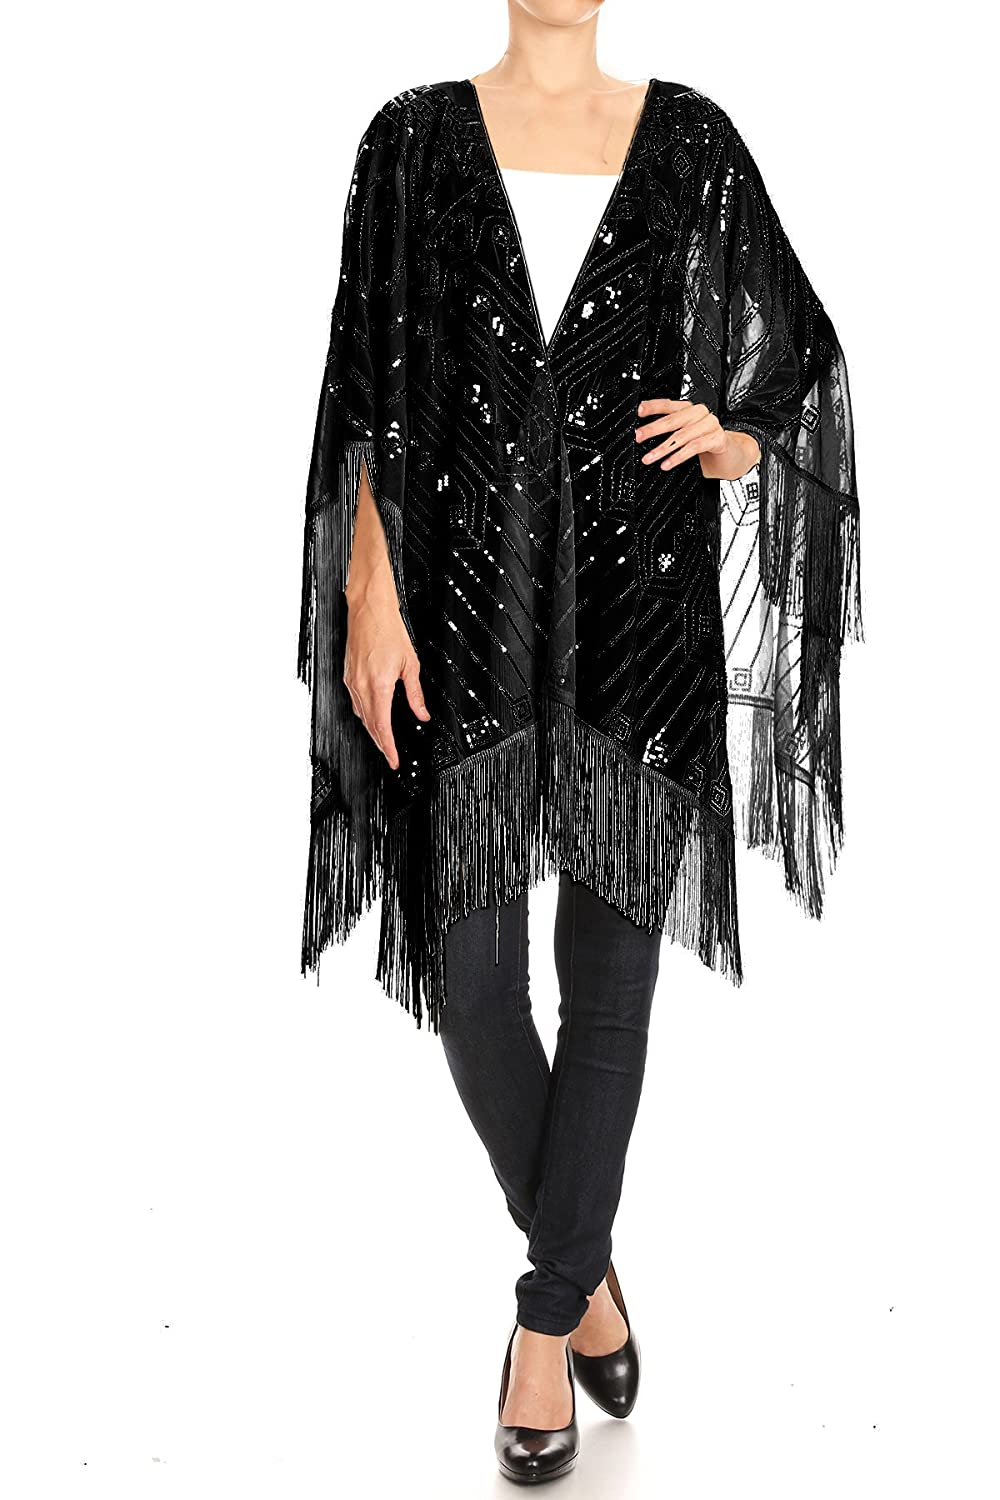 1920s Shawls, Scarves and Evening Jacket Tips Anna-Kaci Womens Oversized Hand Beaded and Sequin Evening Shawl Wrap with Fringe $26.90 AT vintagedancer.com